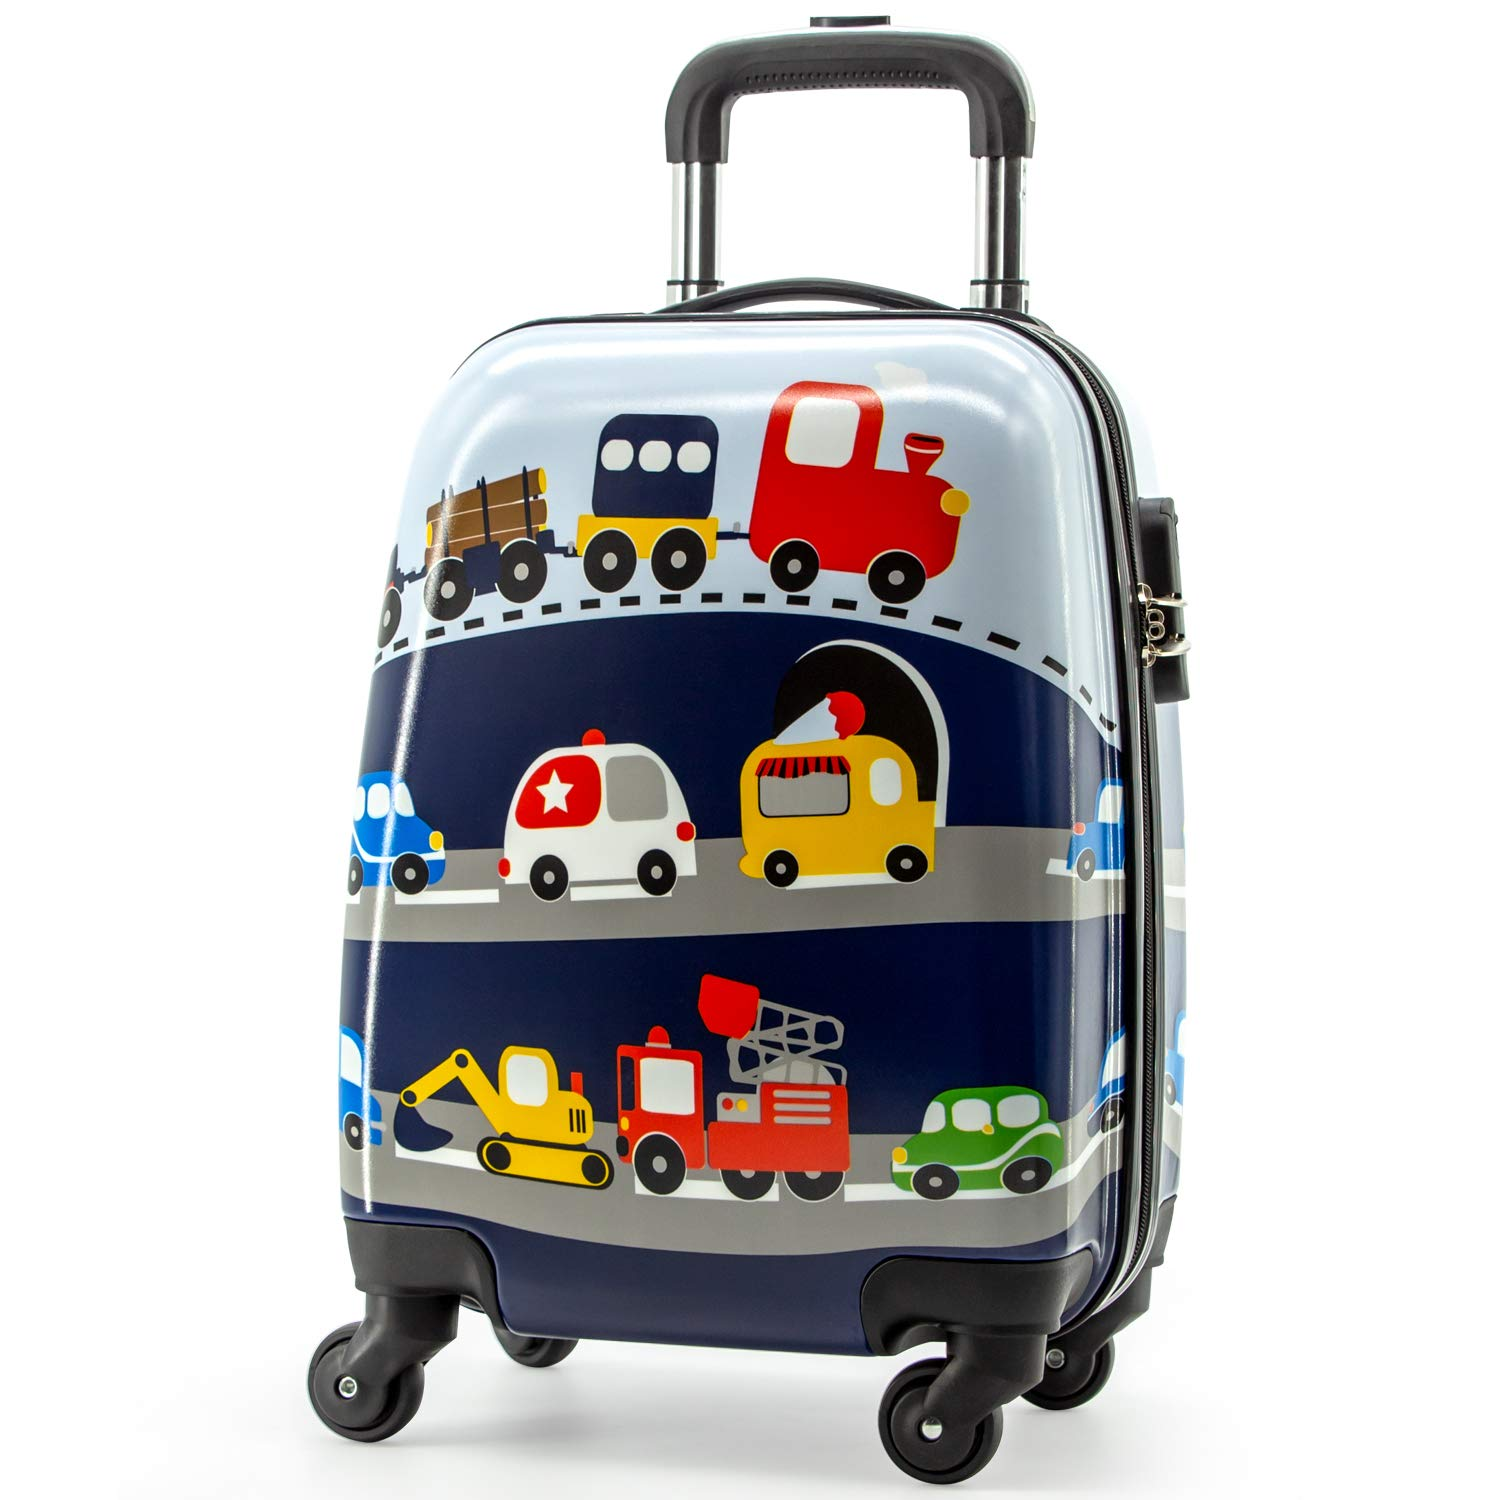 Lttxin cute kids suitcase pull along boys travelling with 4 wheel hard shell 18 inch for boys veholes by Lttxin kids'